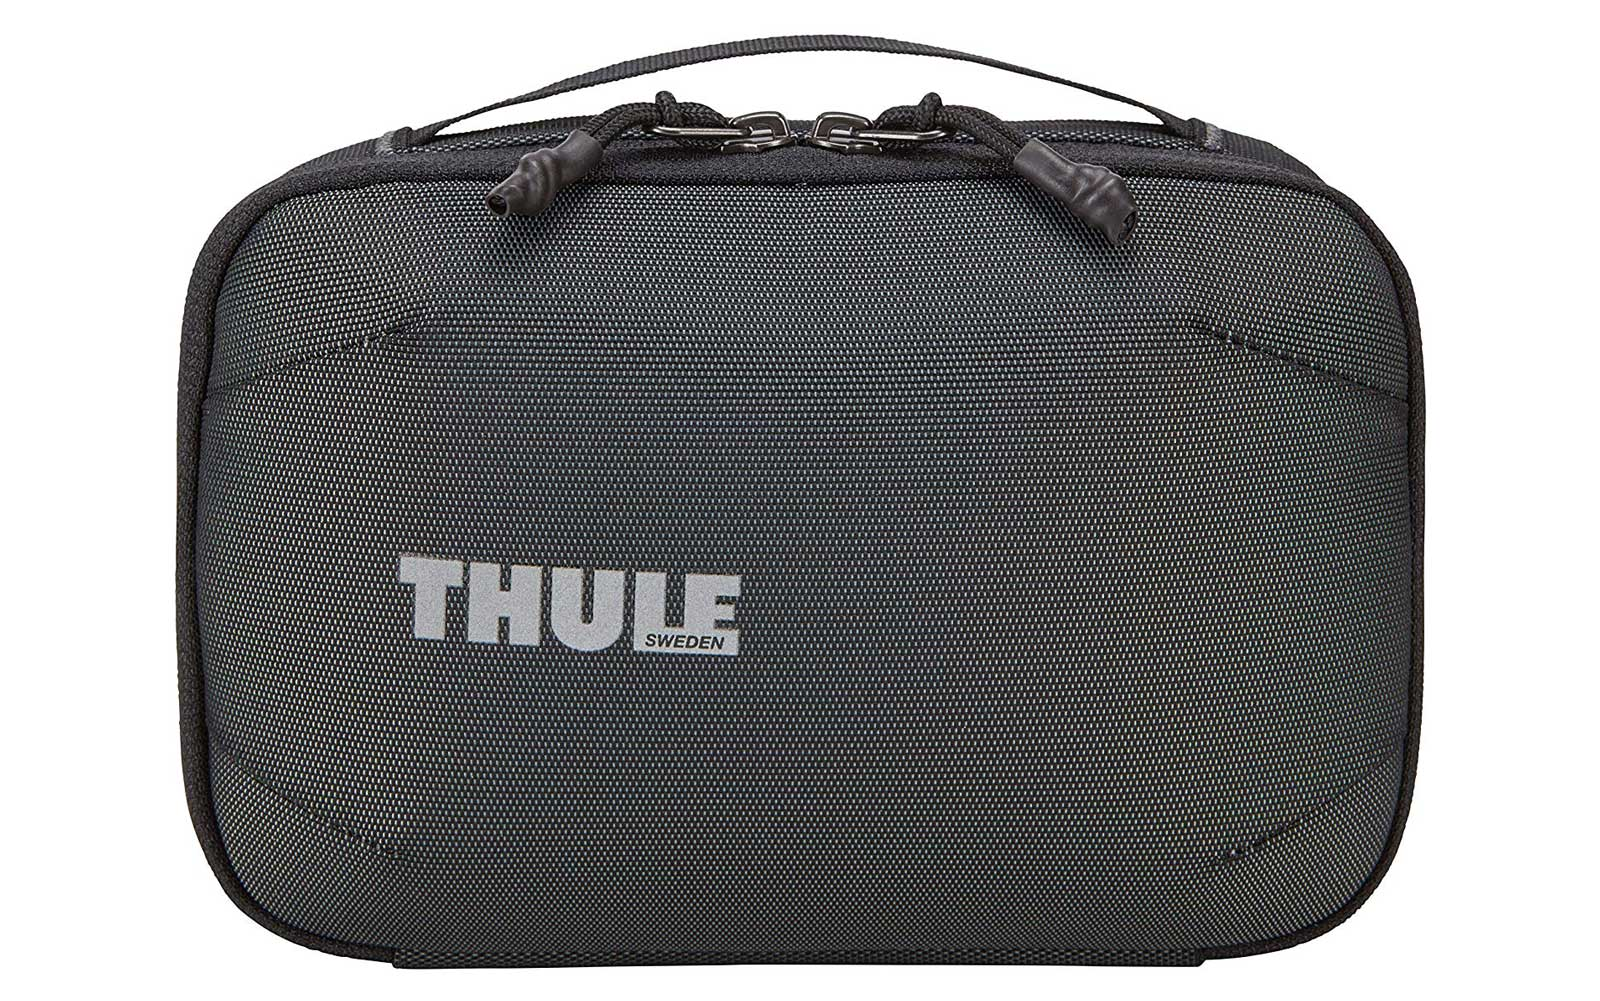 Thule Black Tech Organizer Case